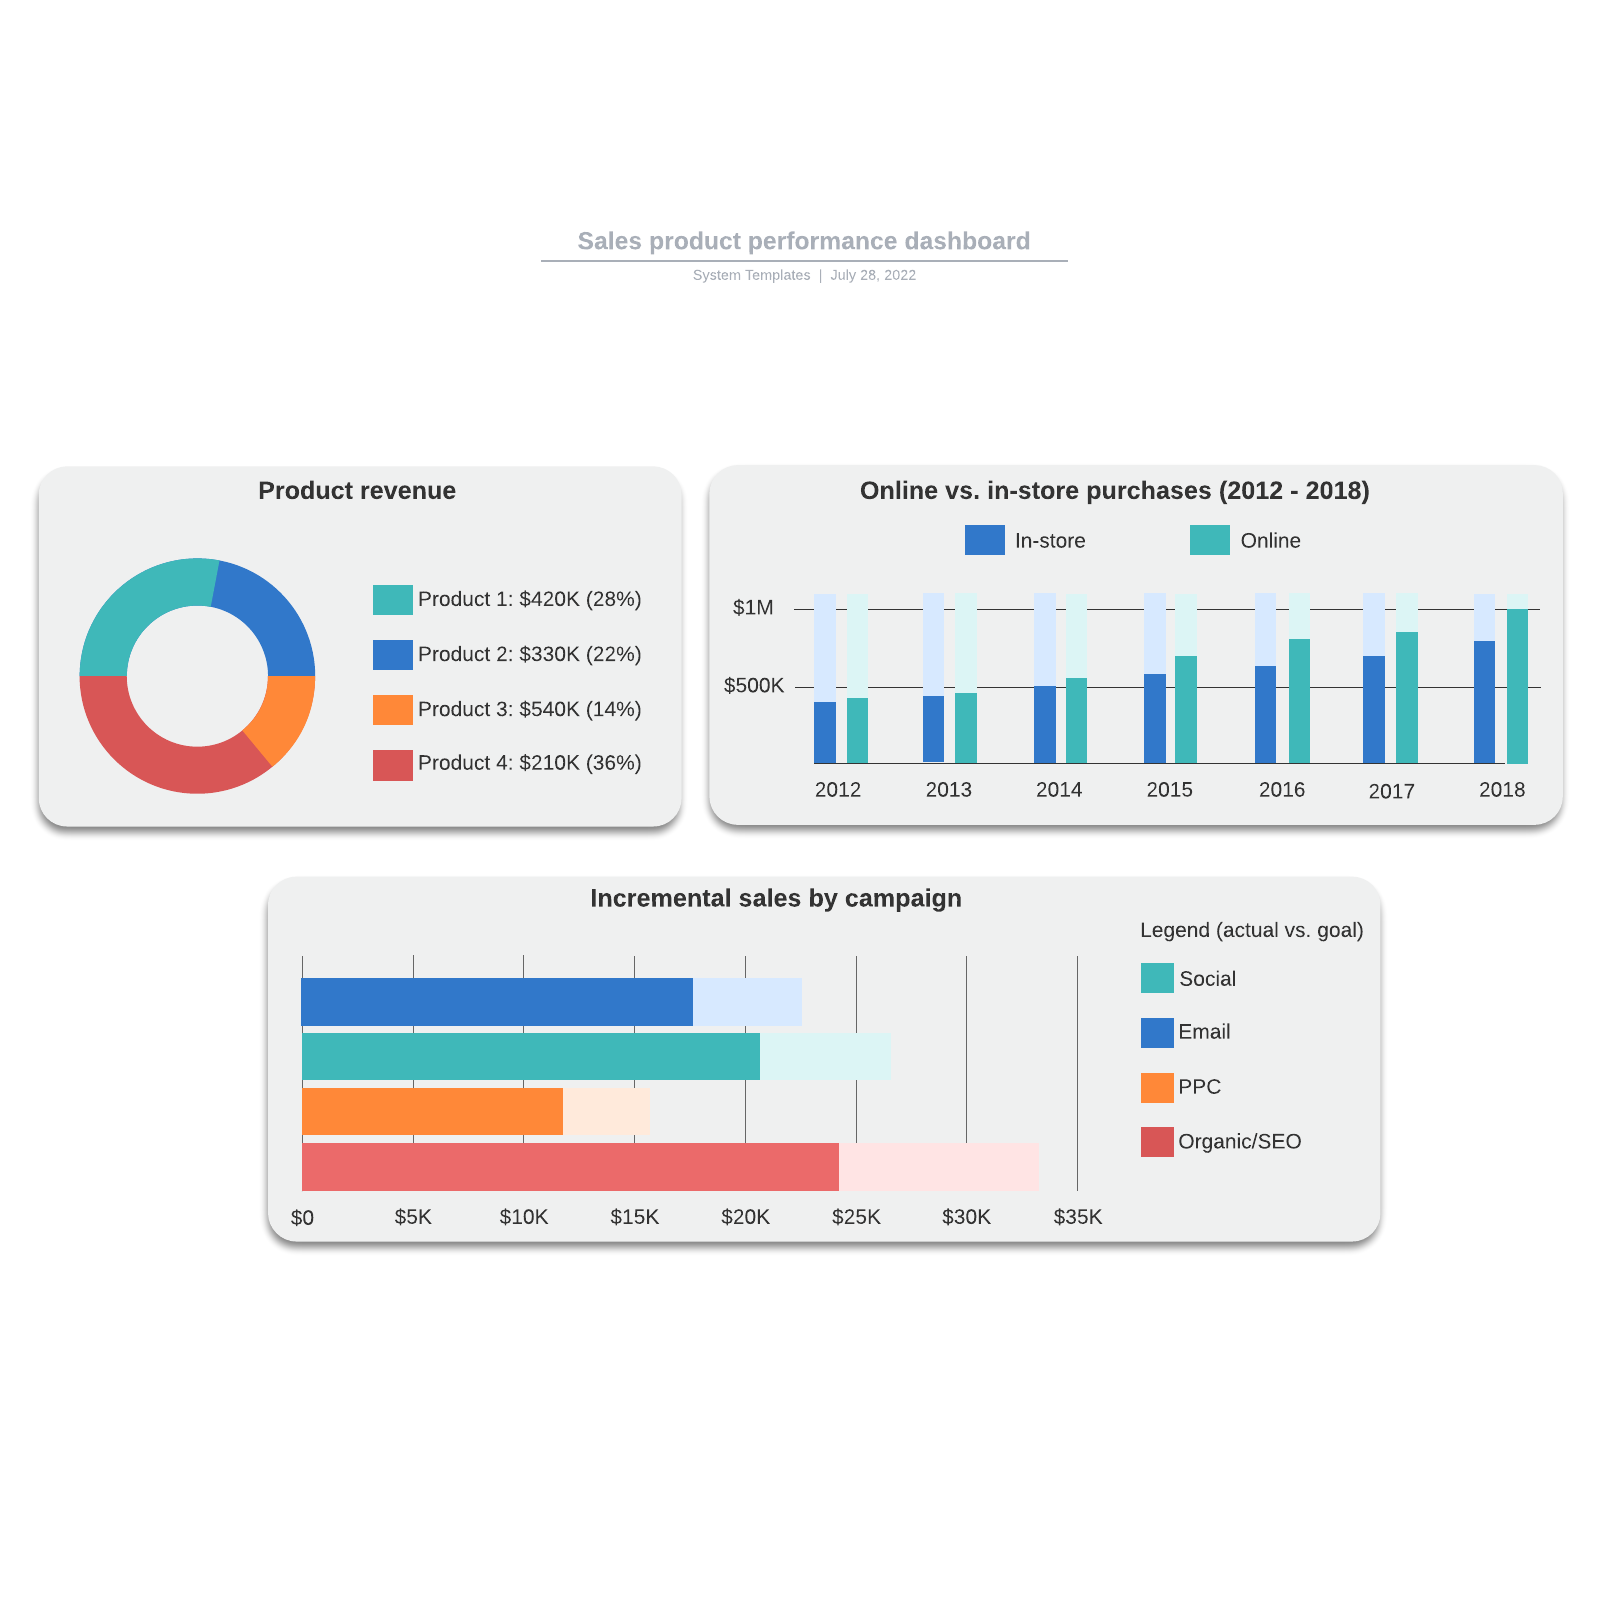 Sales product performance dashboard